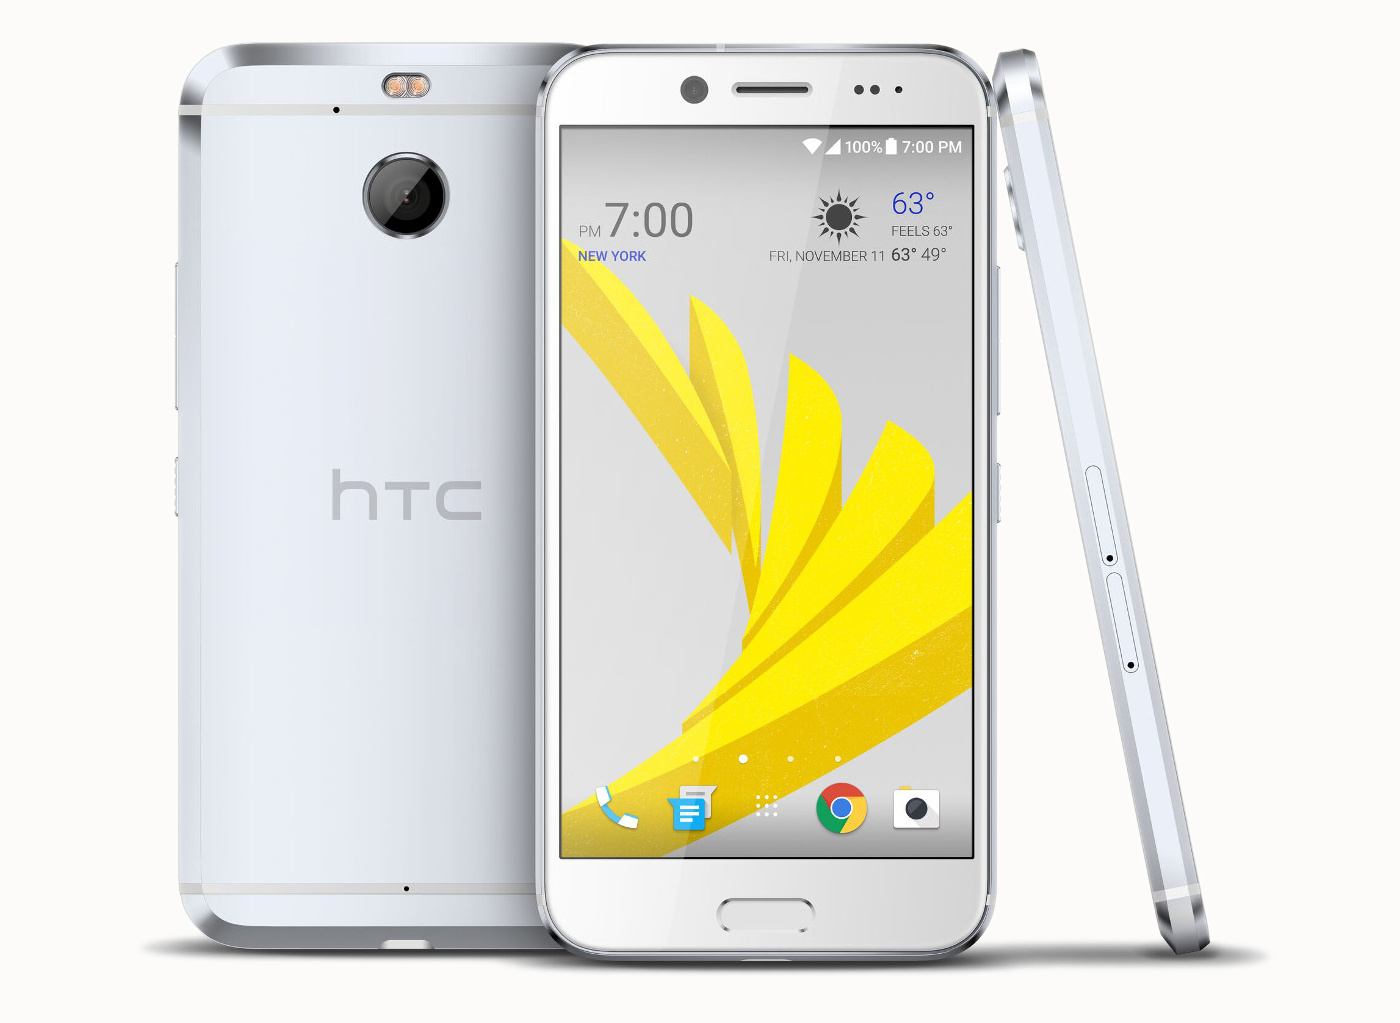 htc-bolt-10-key-features-8